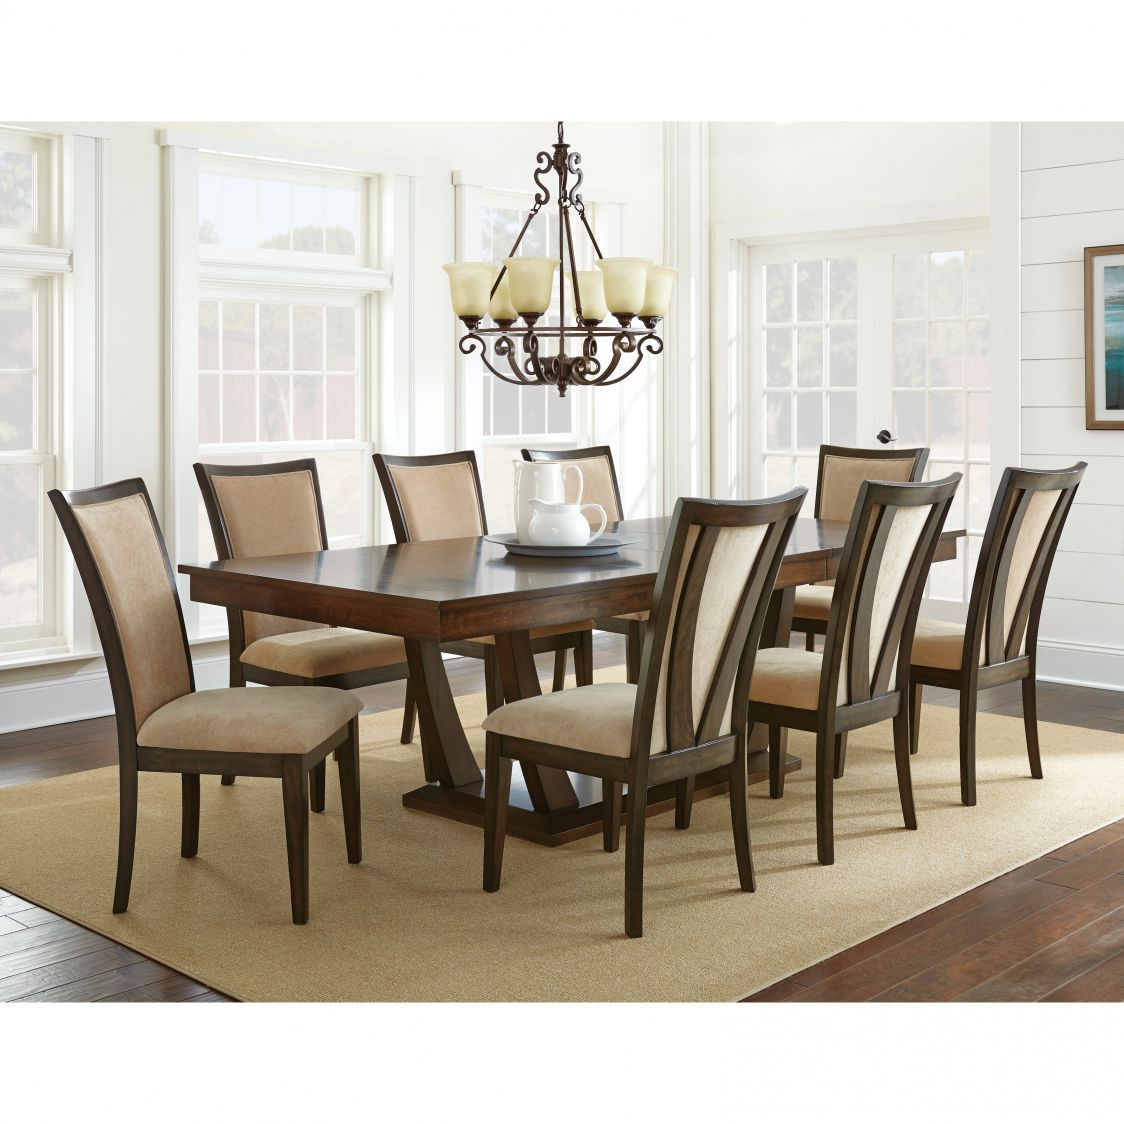 Room · Cheap 9 Piece Dining Room Sets ...